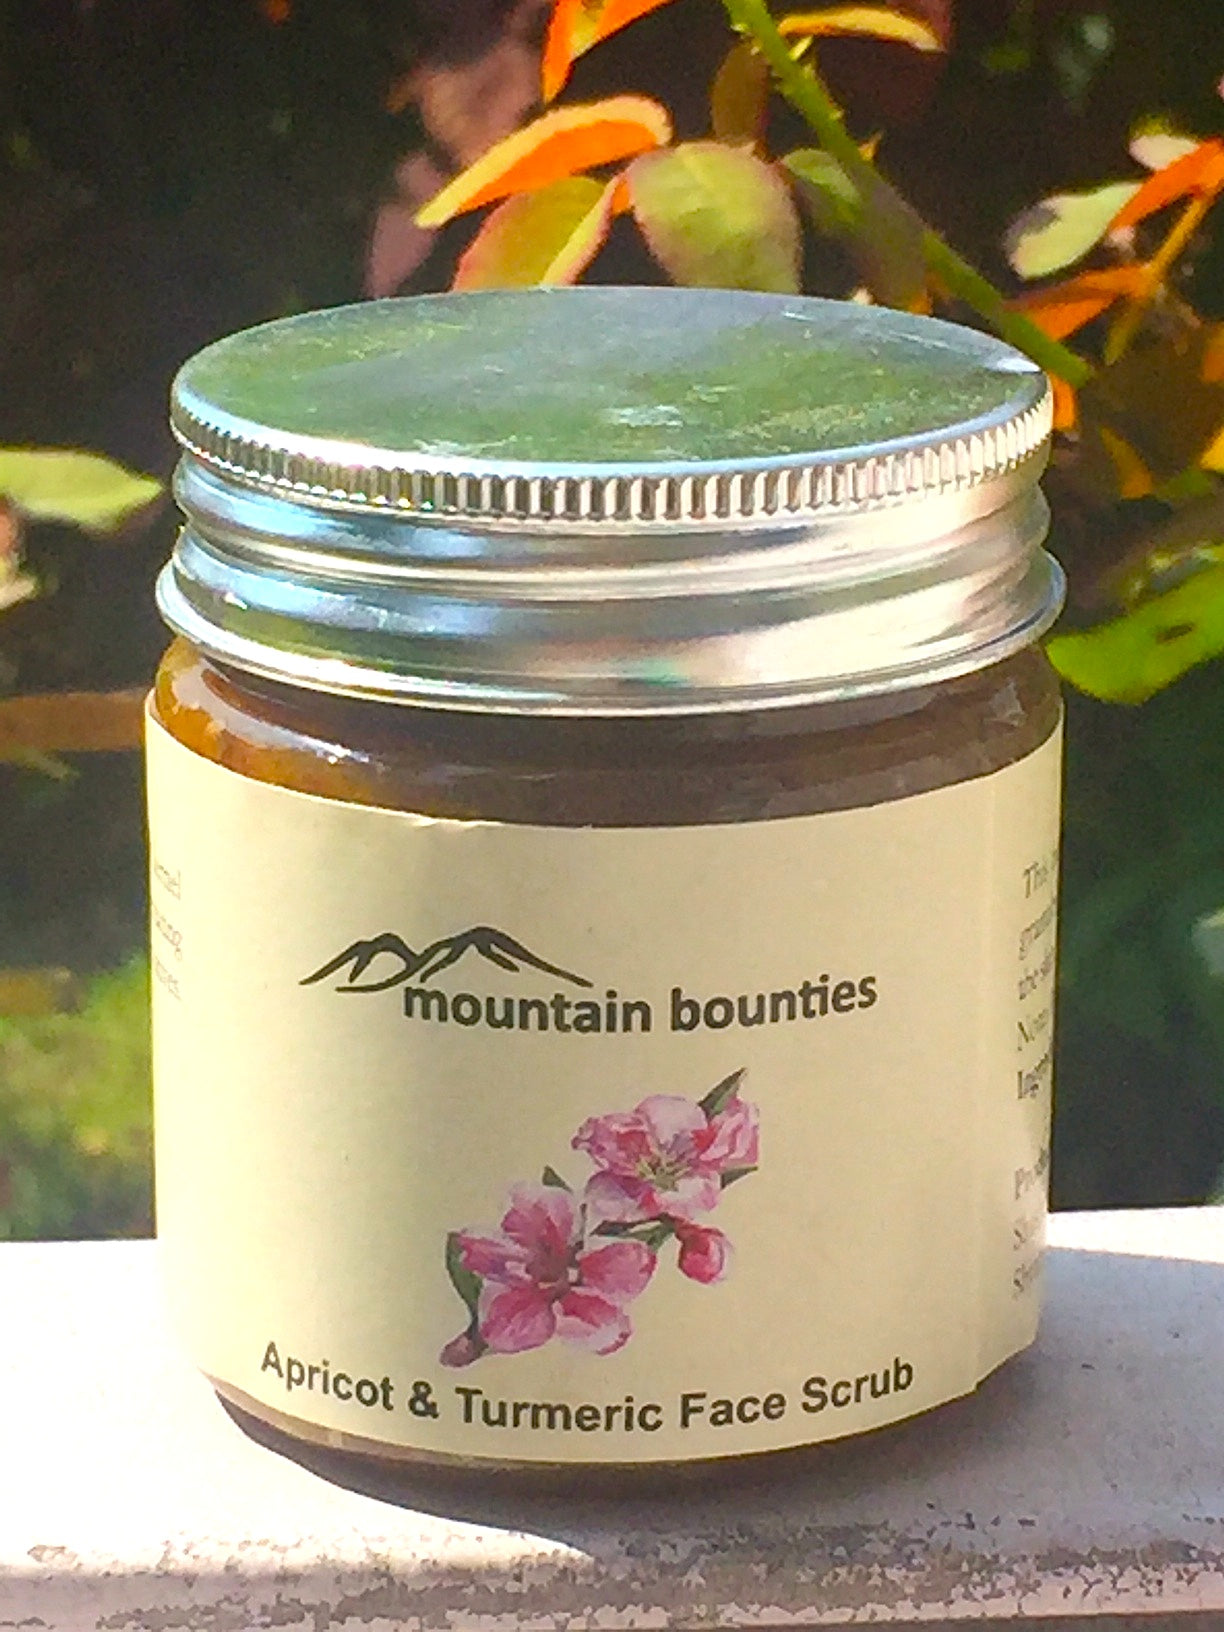 Apricot & Turmeric Face Scrub. Turmeric Apricot face scrub. Exfoliating. Natural, Handmade in Himachal